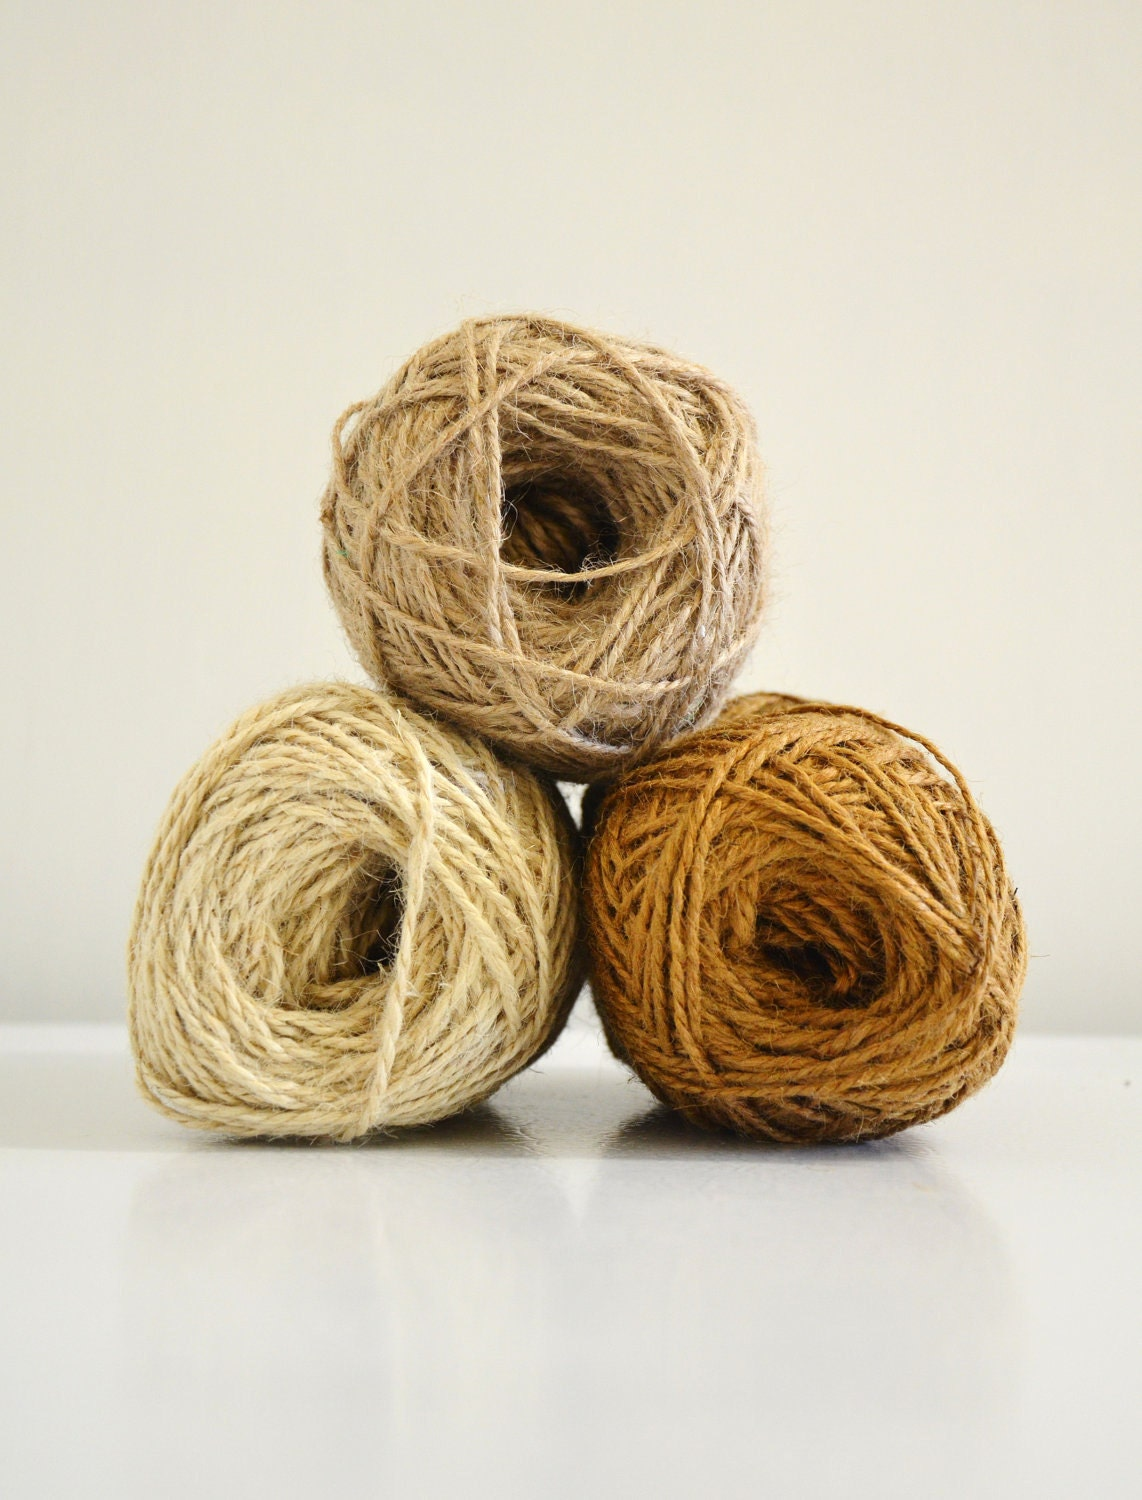 Rustic Jute Twine String Yarn For Crafting Knit Crochet